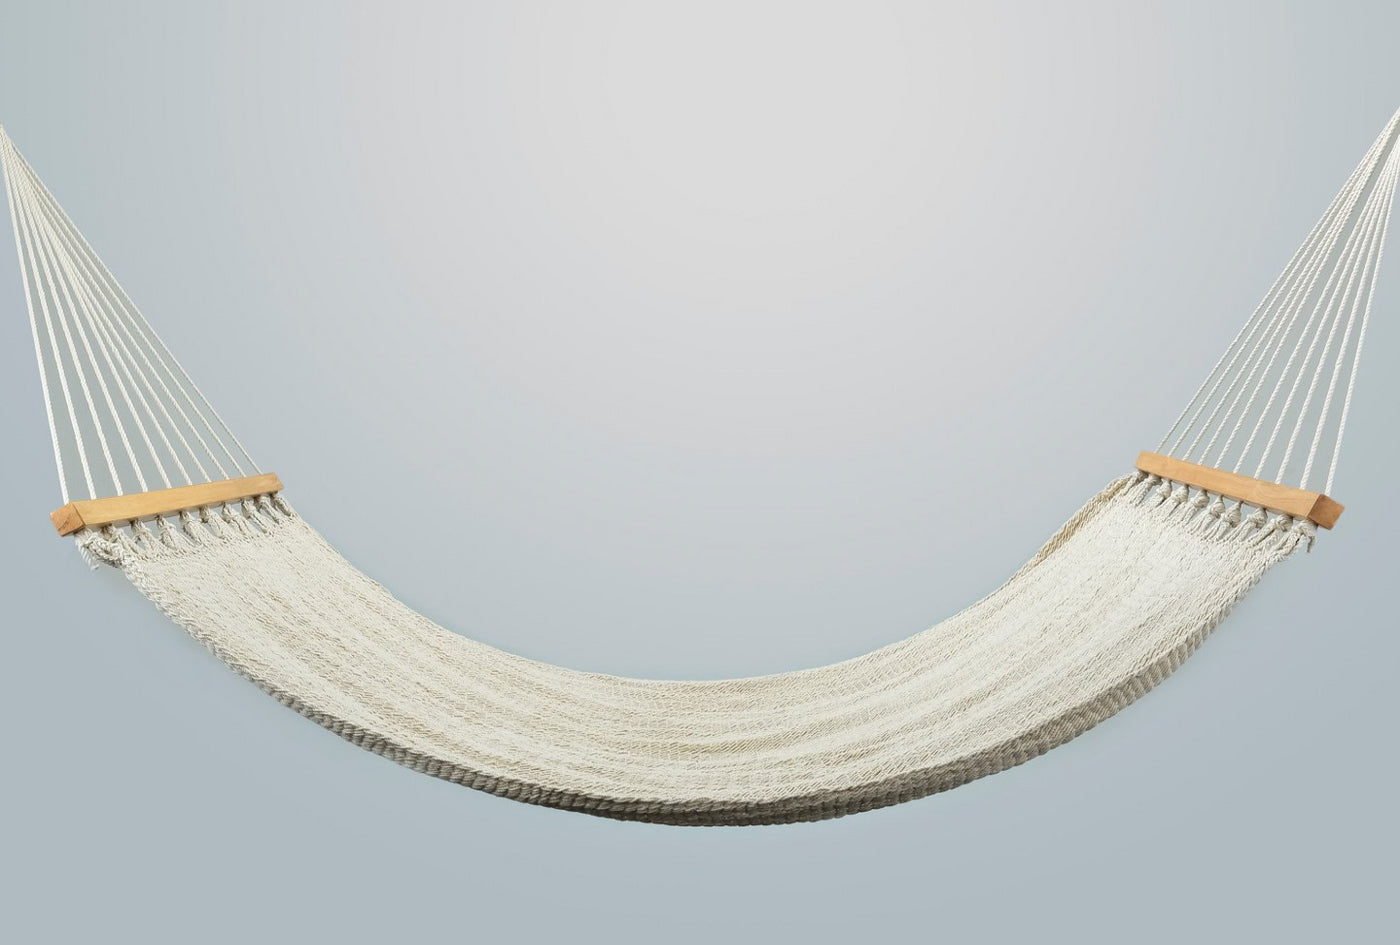 Luxury High End Hammock Handwoven Organic Cotton White Natural Personal